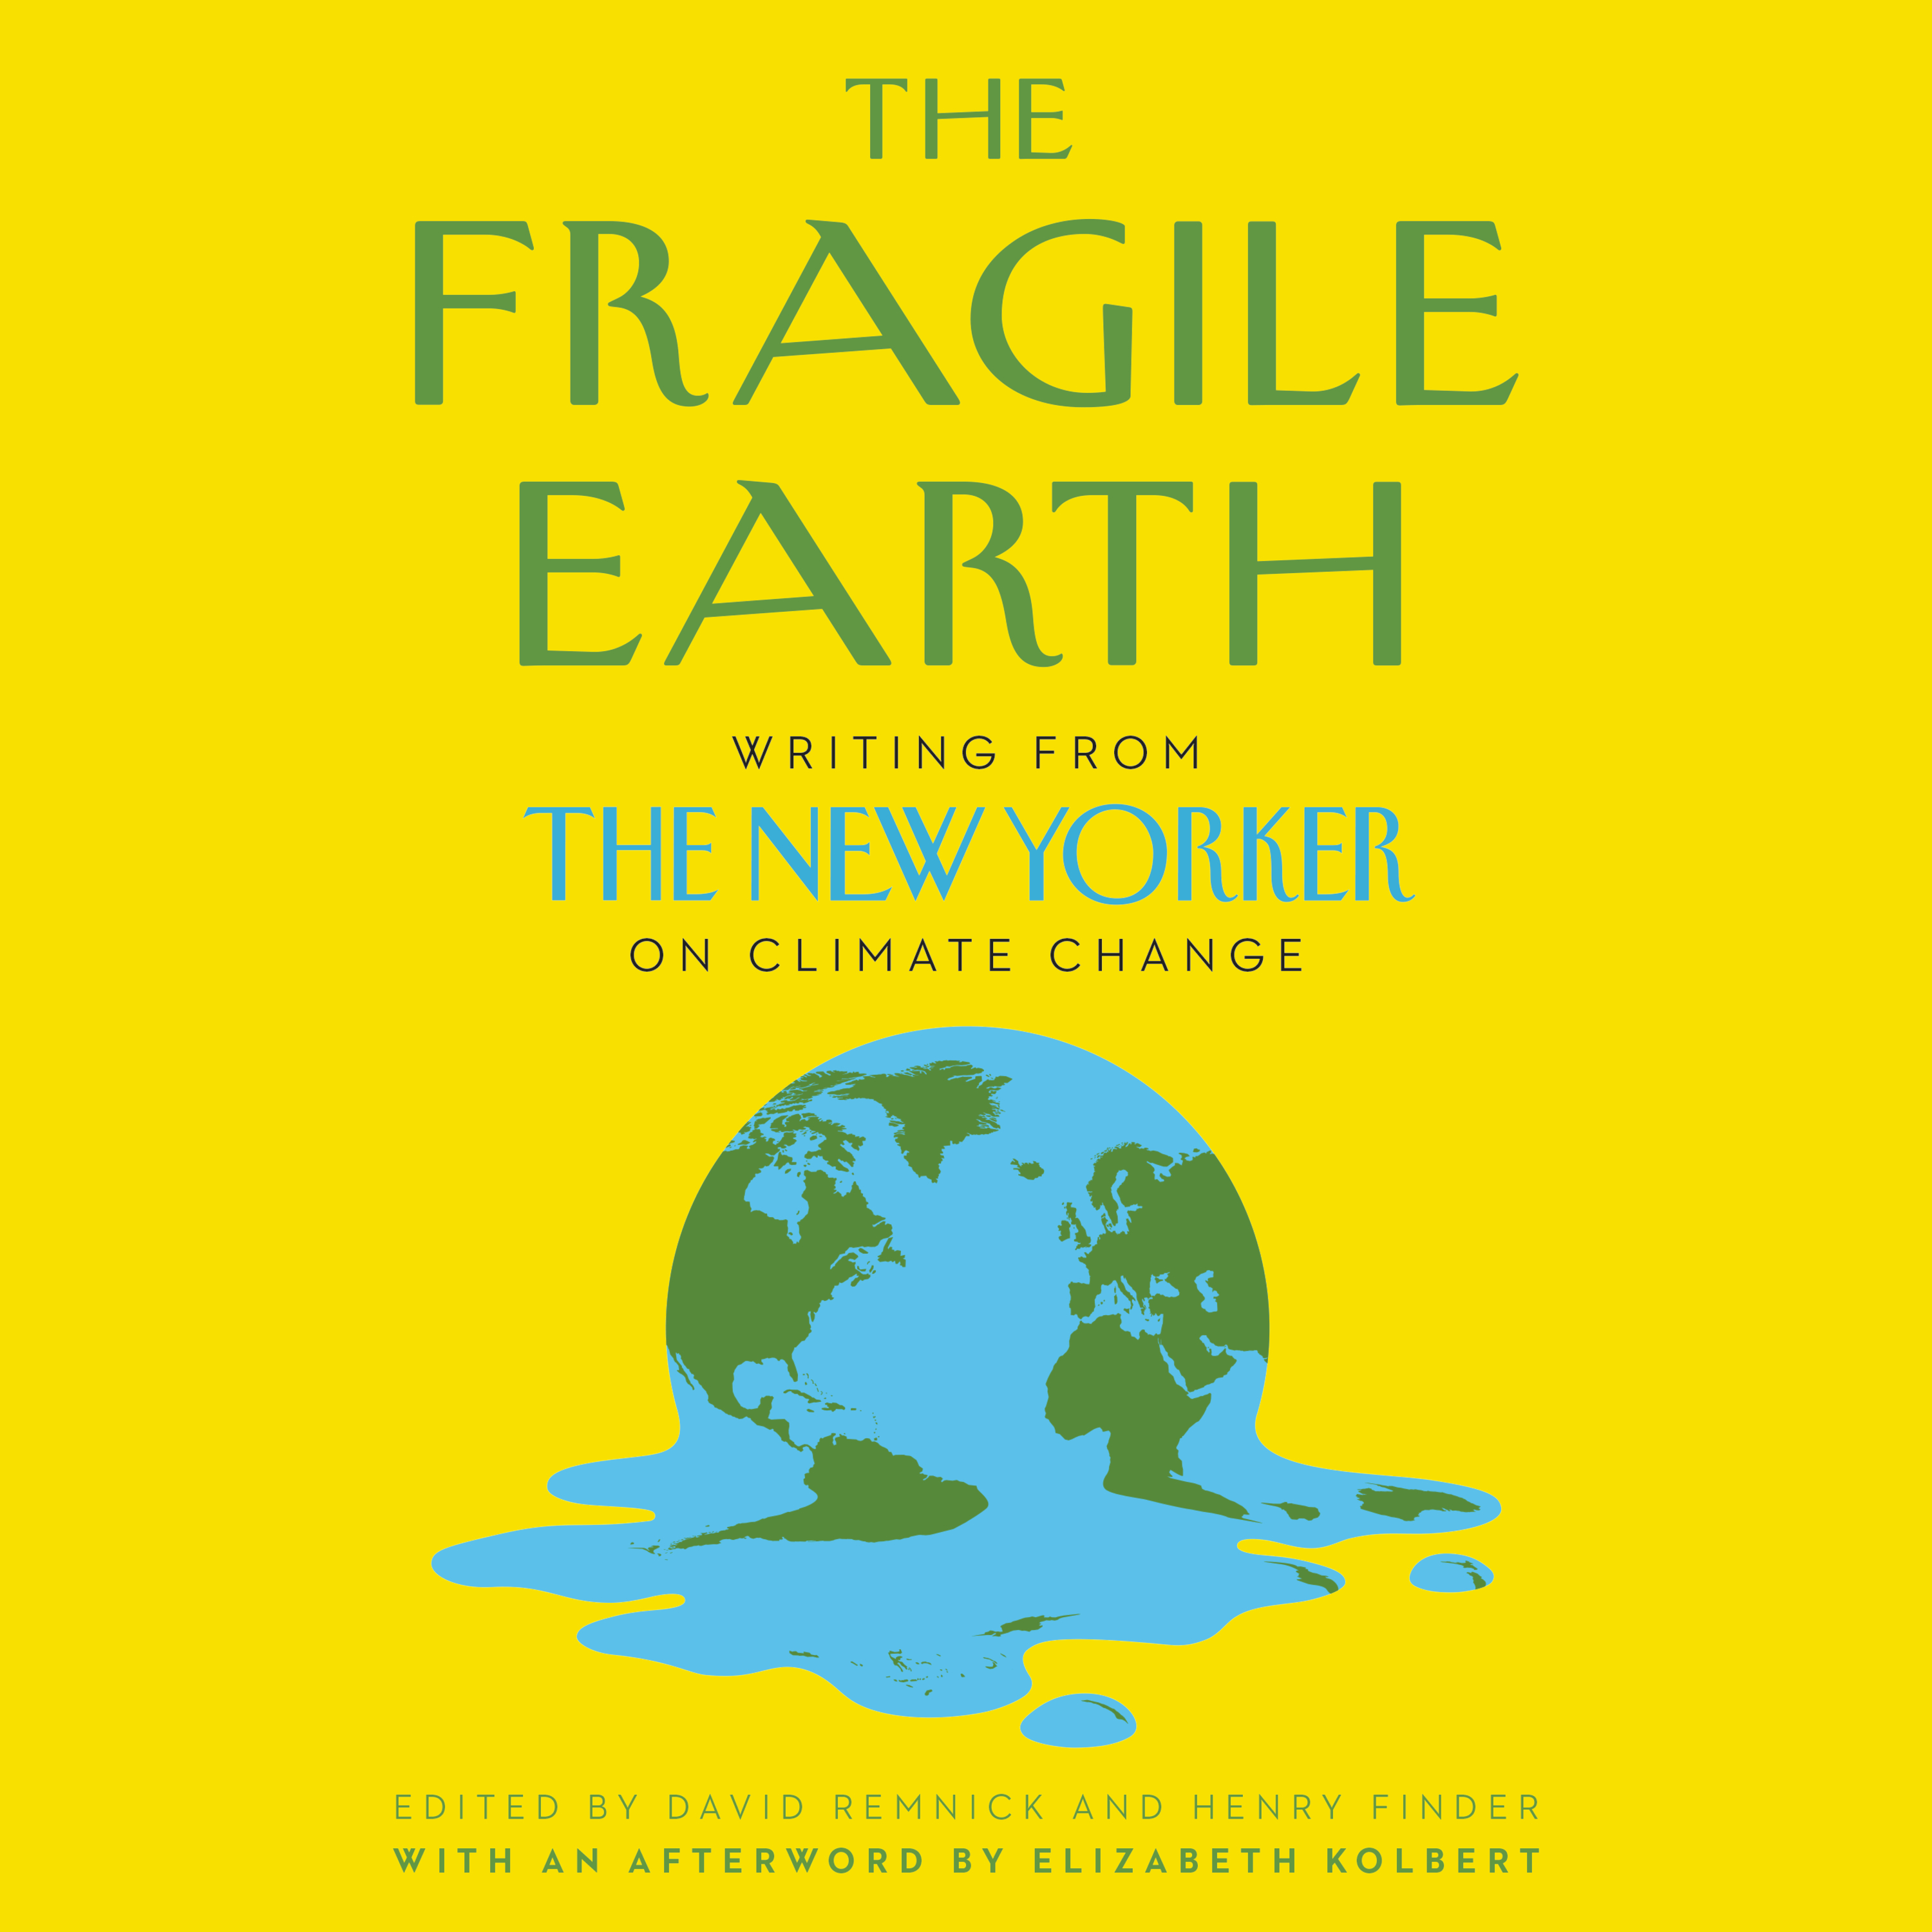 image for The Fragile Earth: Writing from the New Yorker on Climate Change